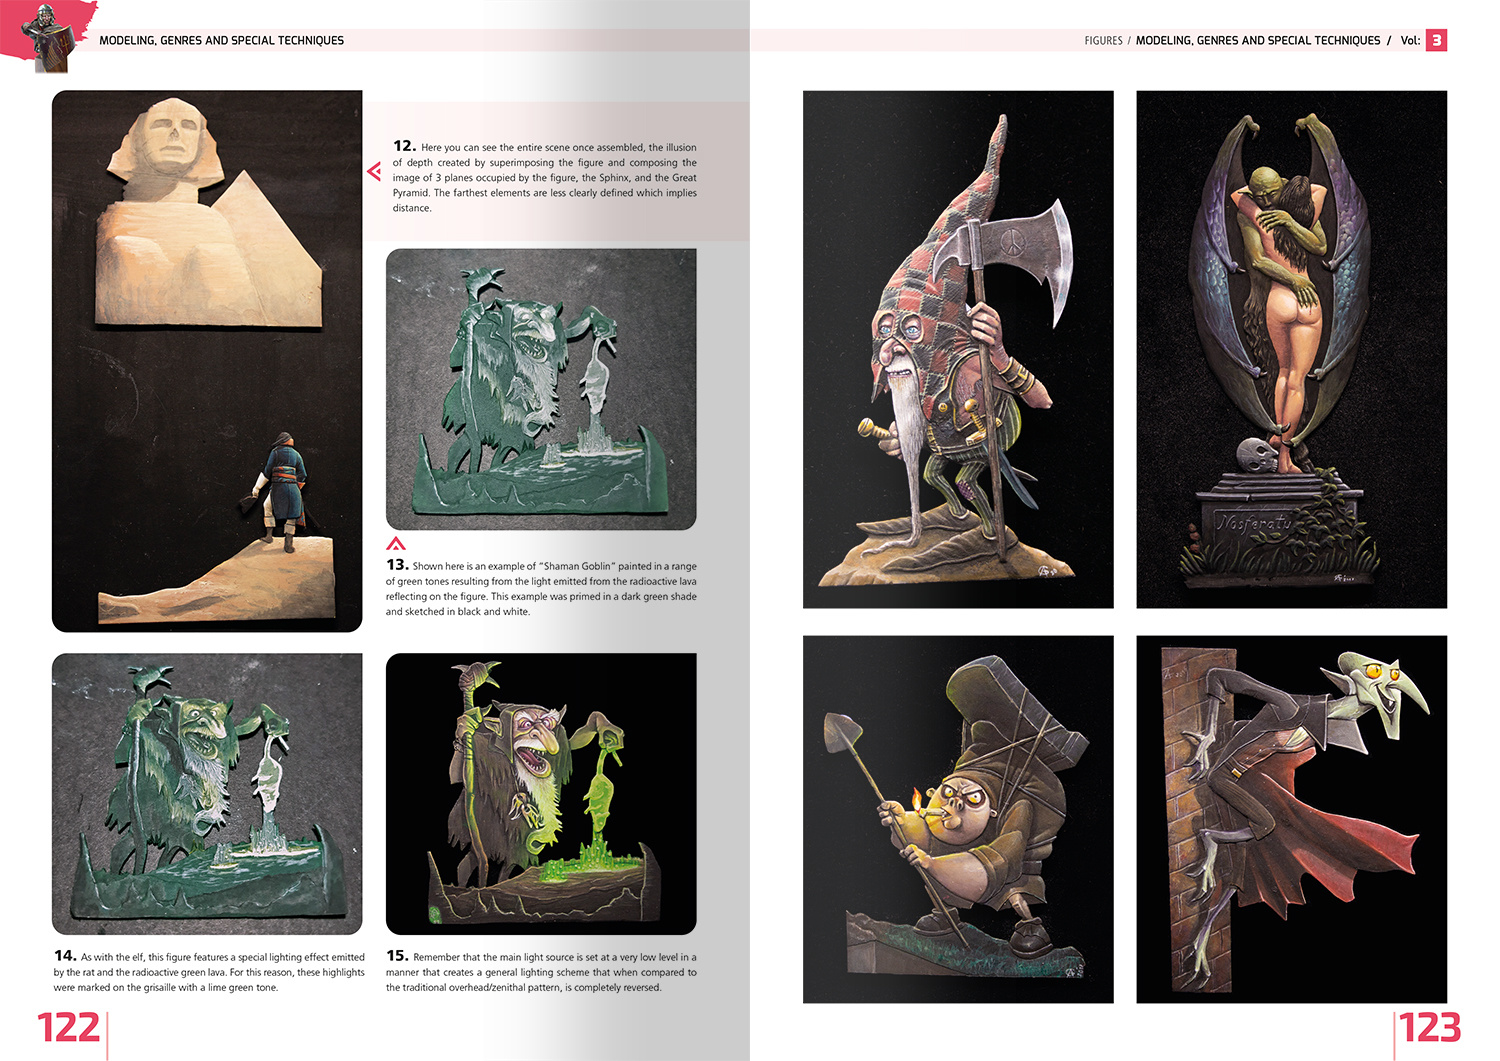 Ammo by Mig Jimenez Encyclopedia Of Figures Modelling Techniques Vol. 3 - Modelling, Genres And Special Techniques English - Ammo by Mig Jimenez - A.MIG-6223